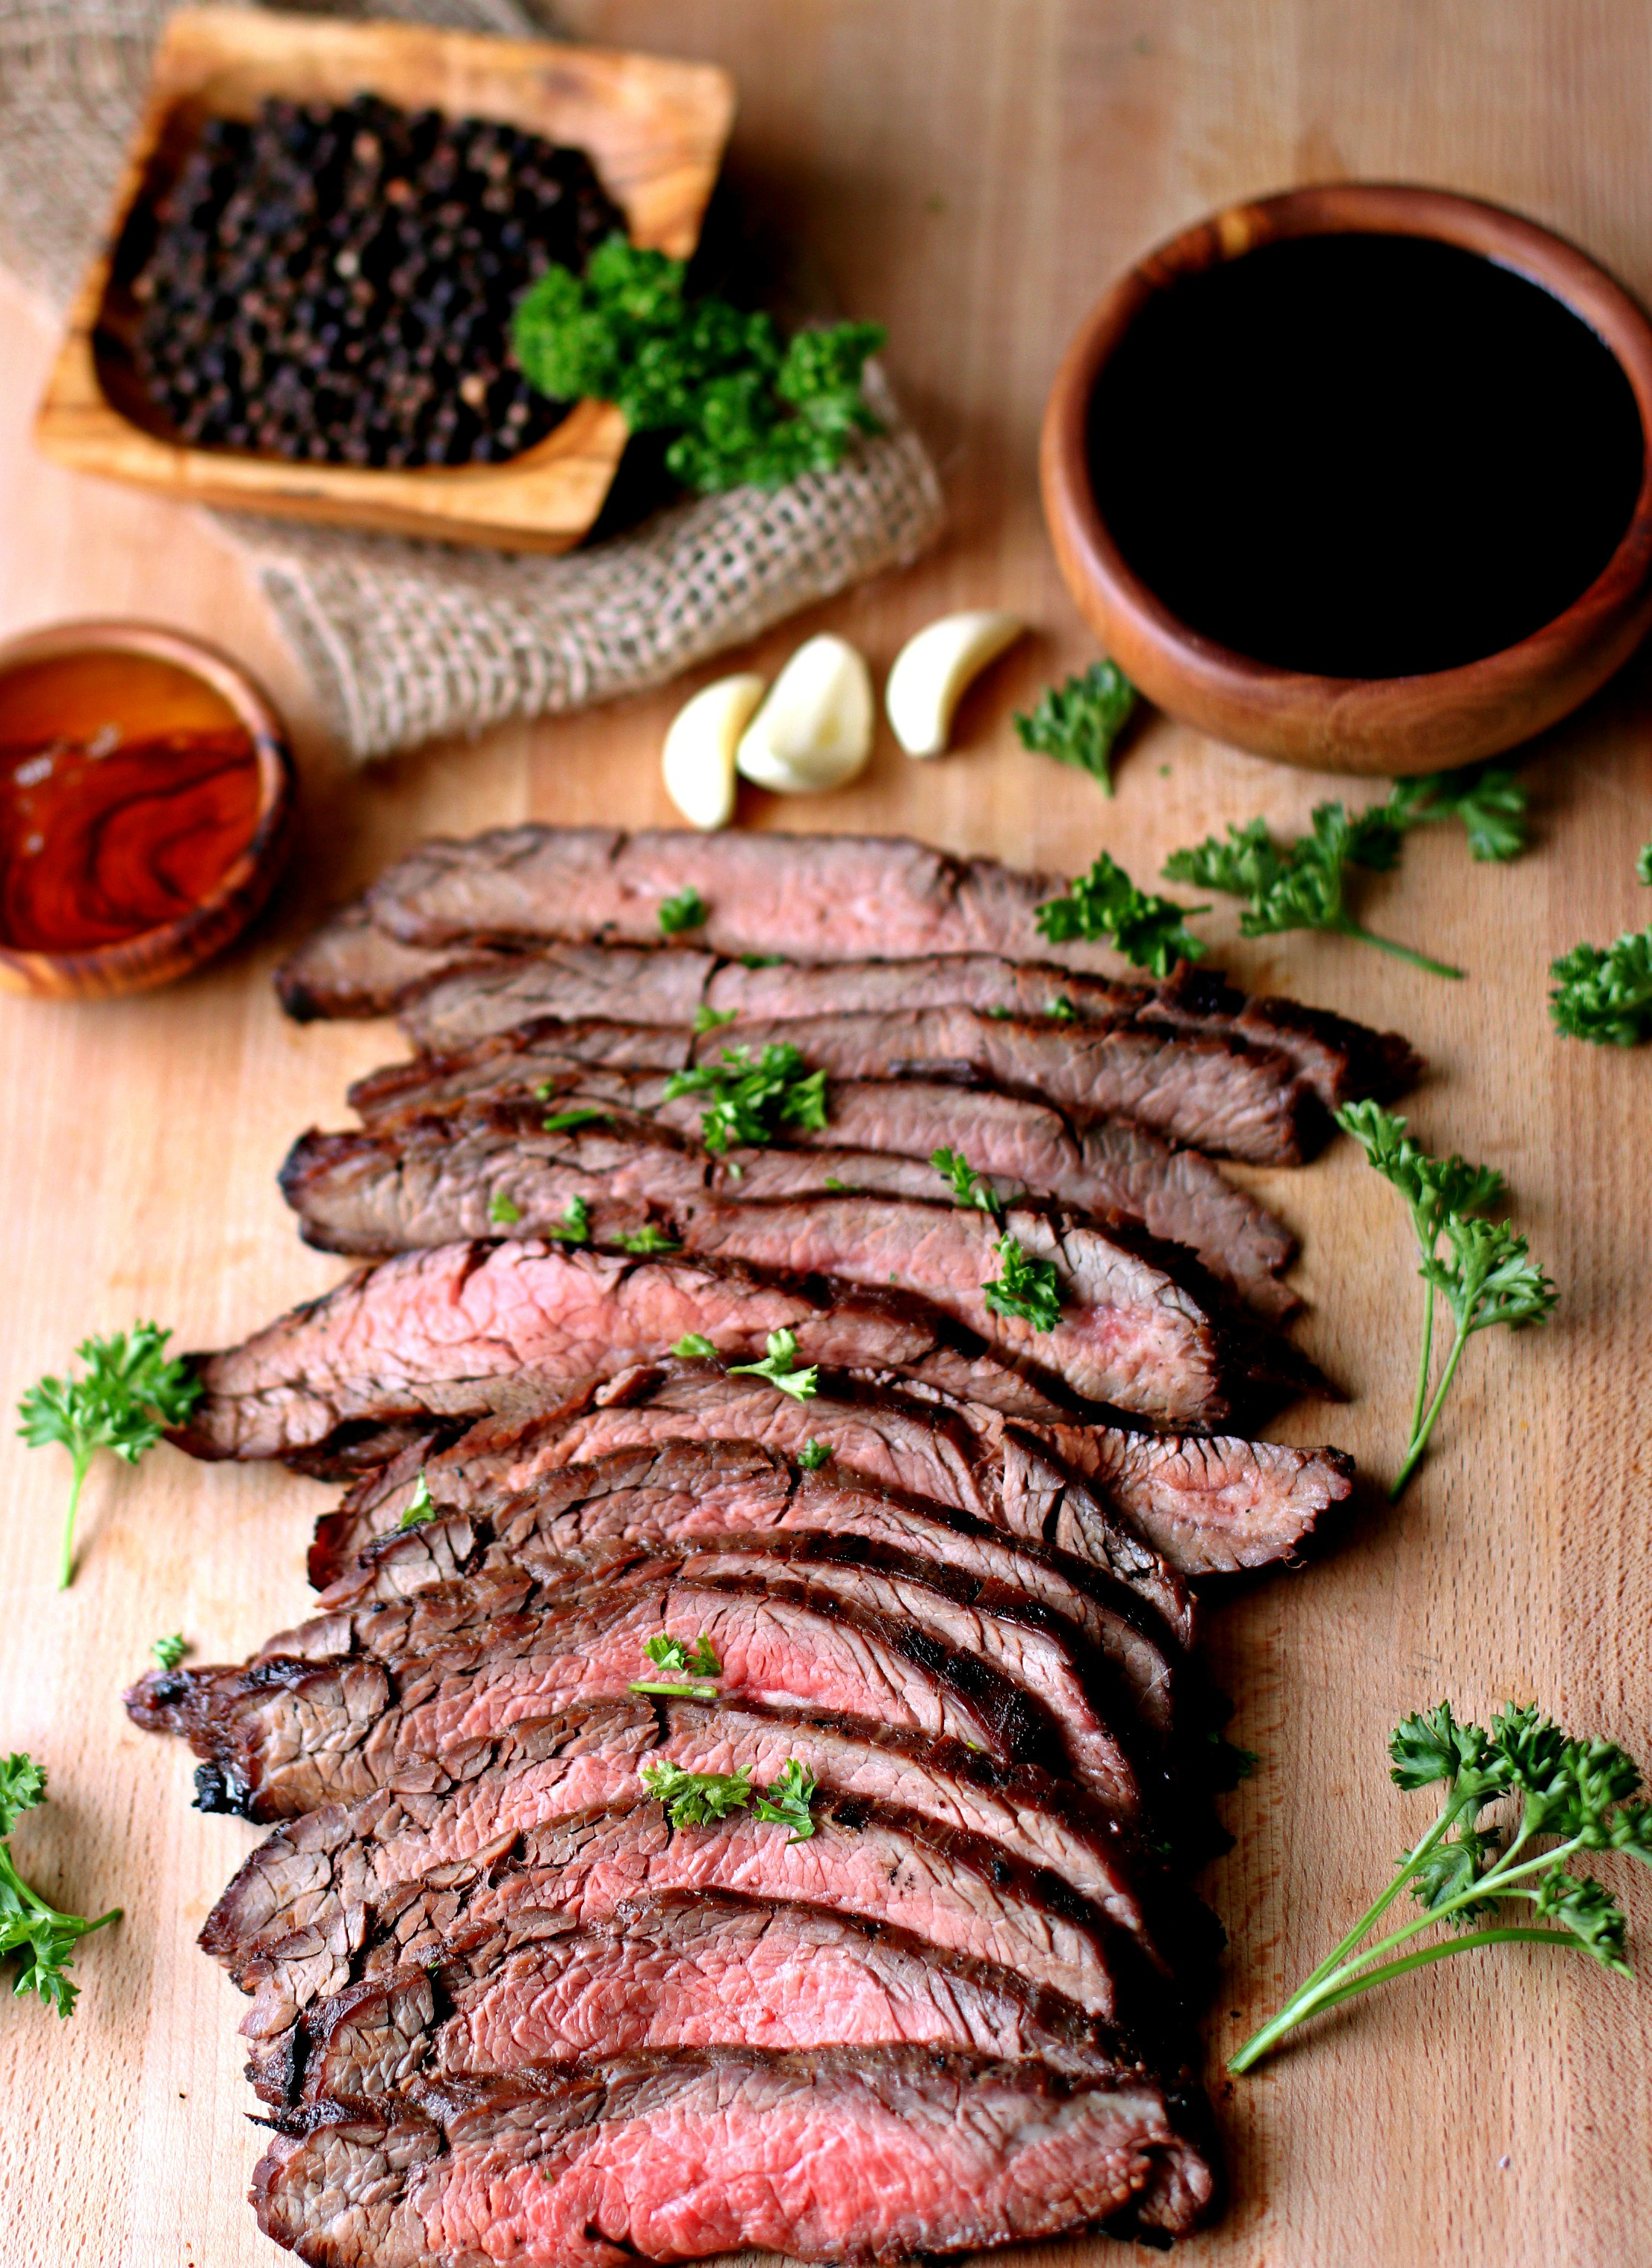 Marinated Flank Steak - Bunny's Warm Oven